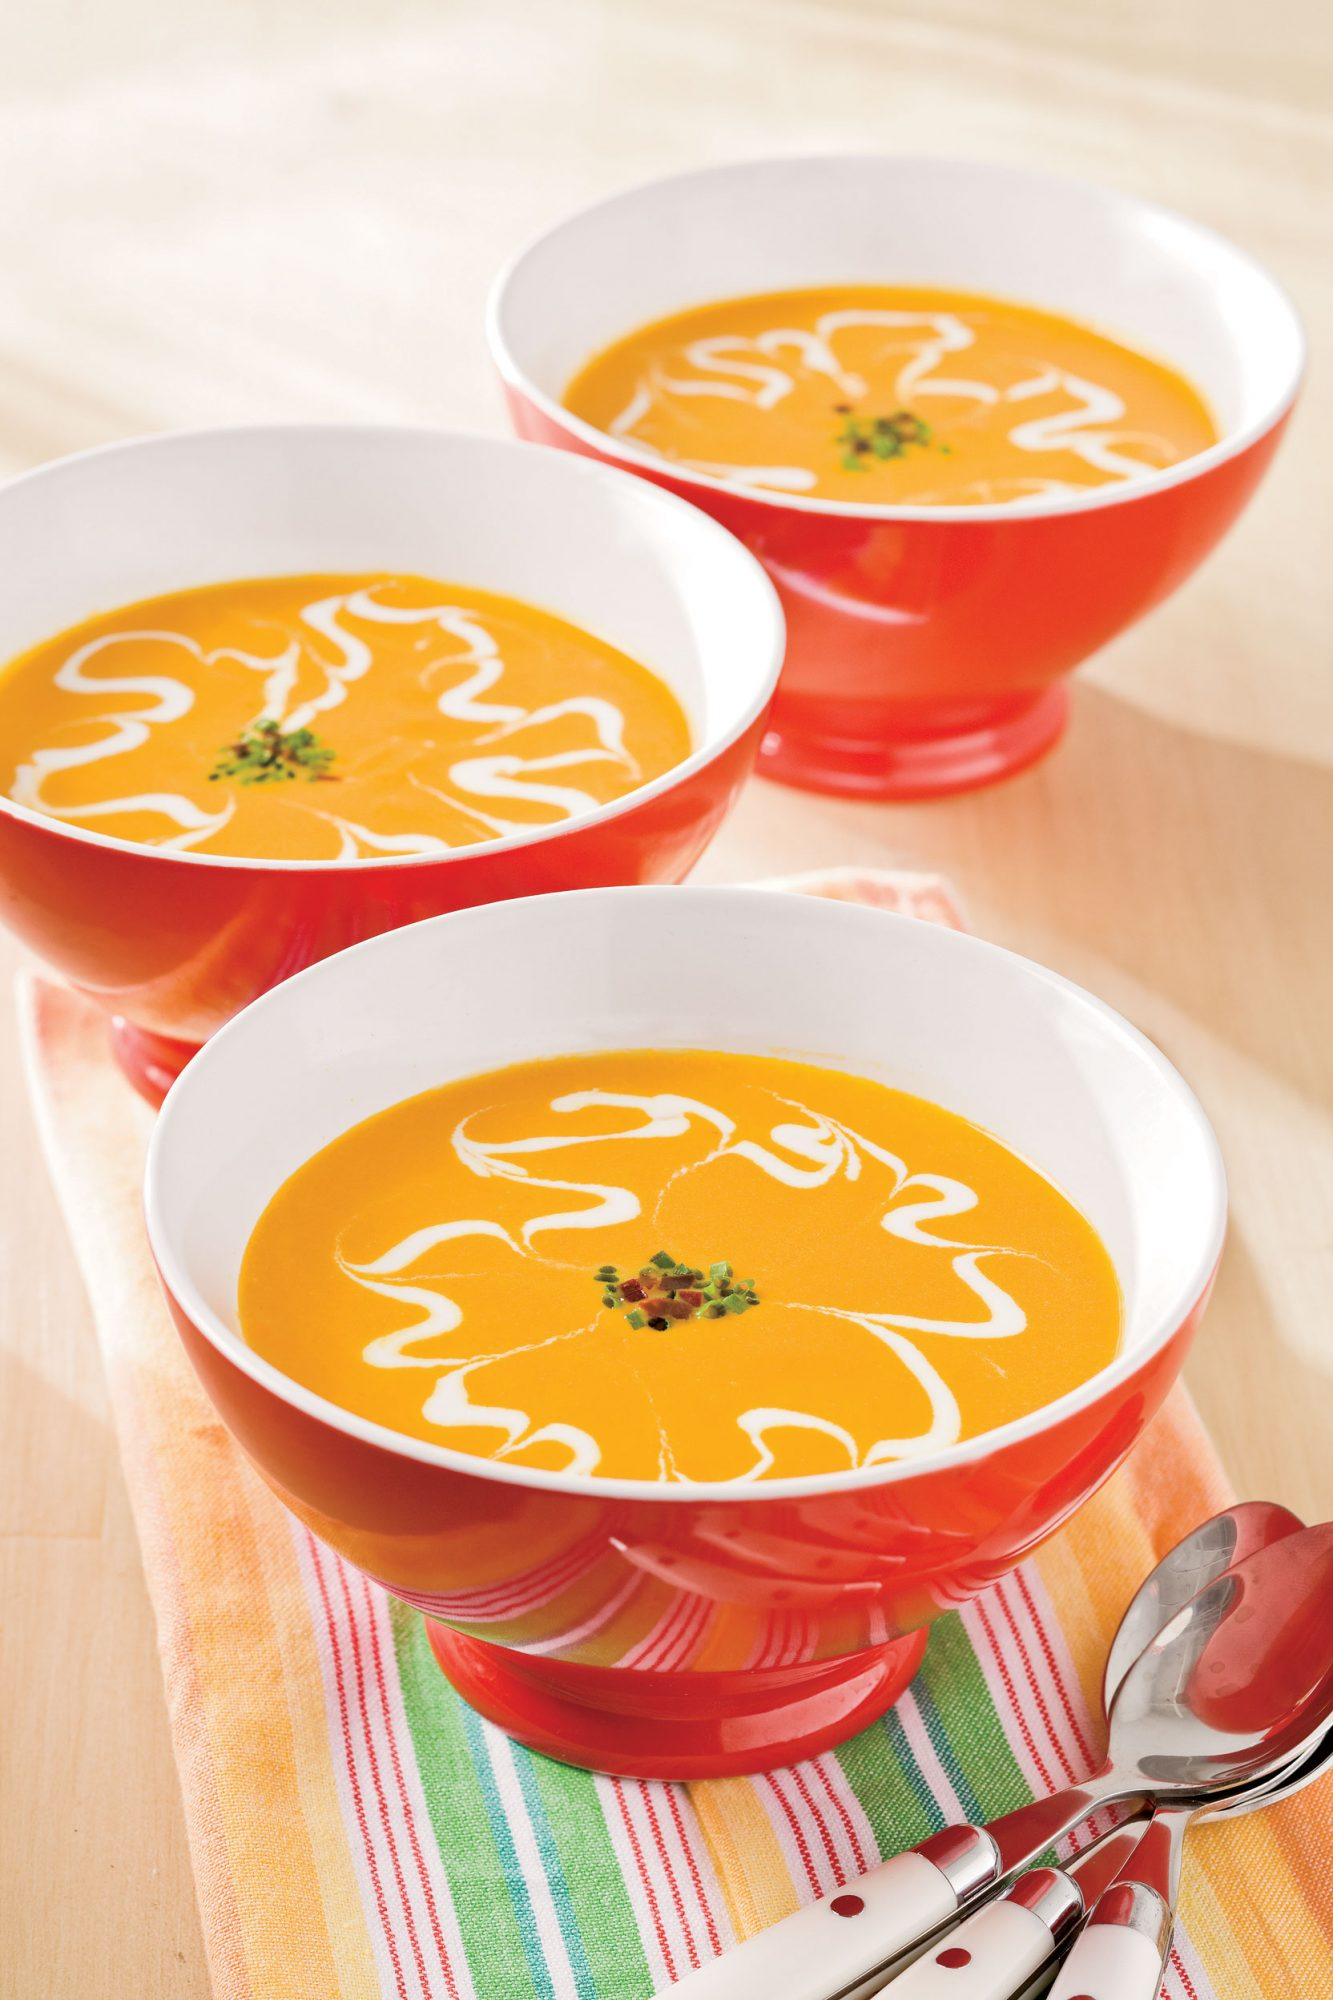 Best Recipes 2010: Baby Carrot Soup